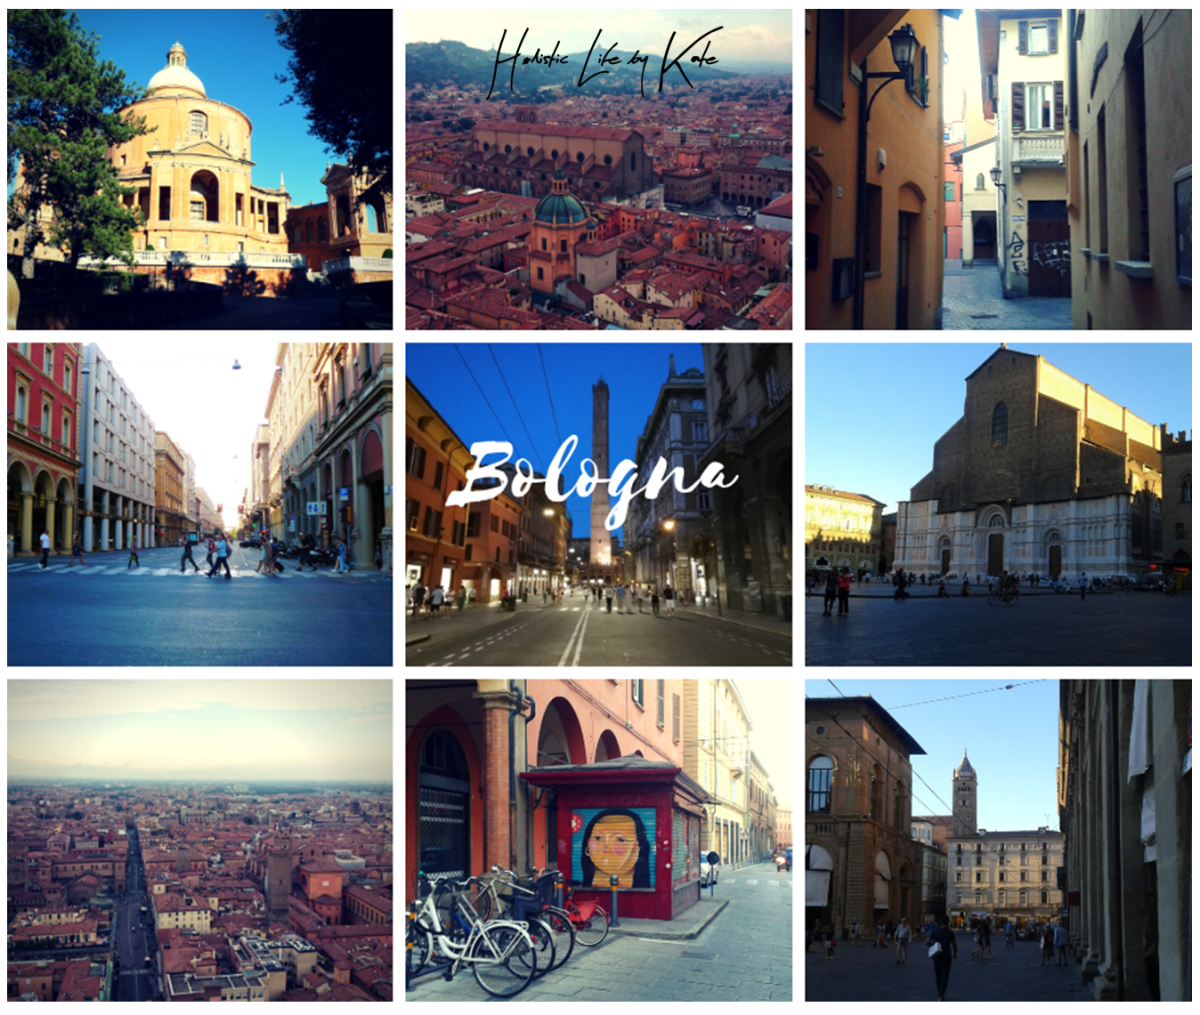 One day trip in Bologna